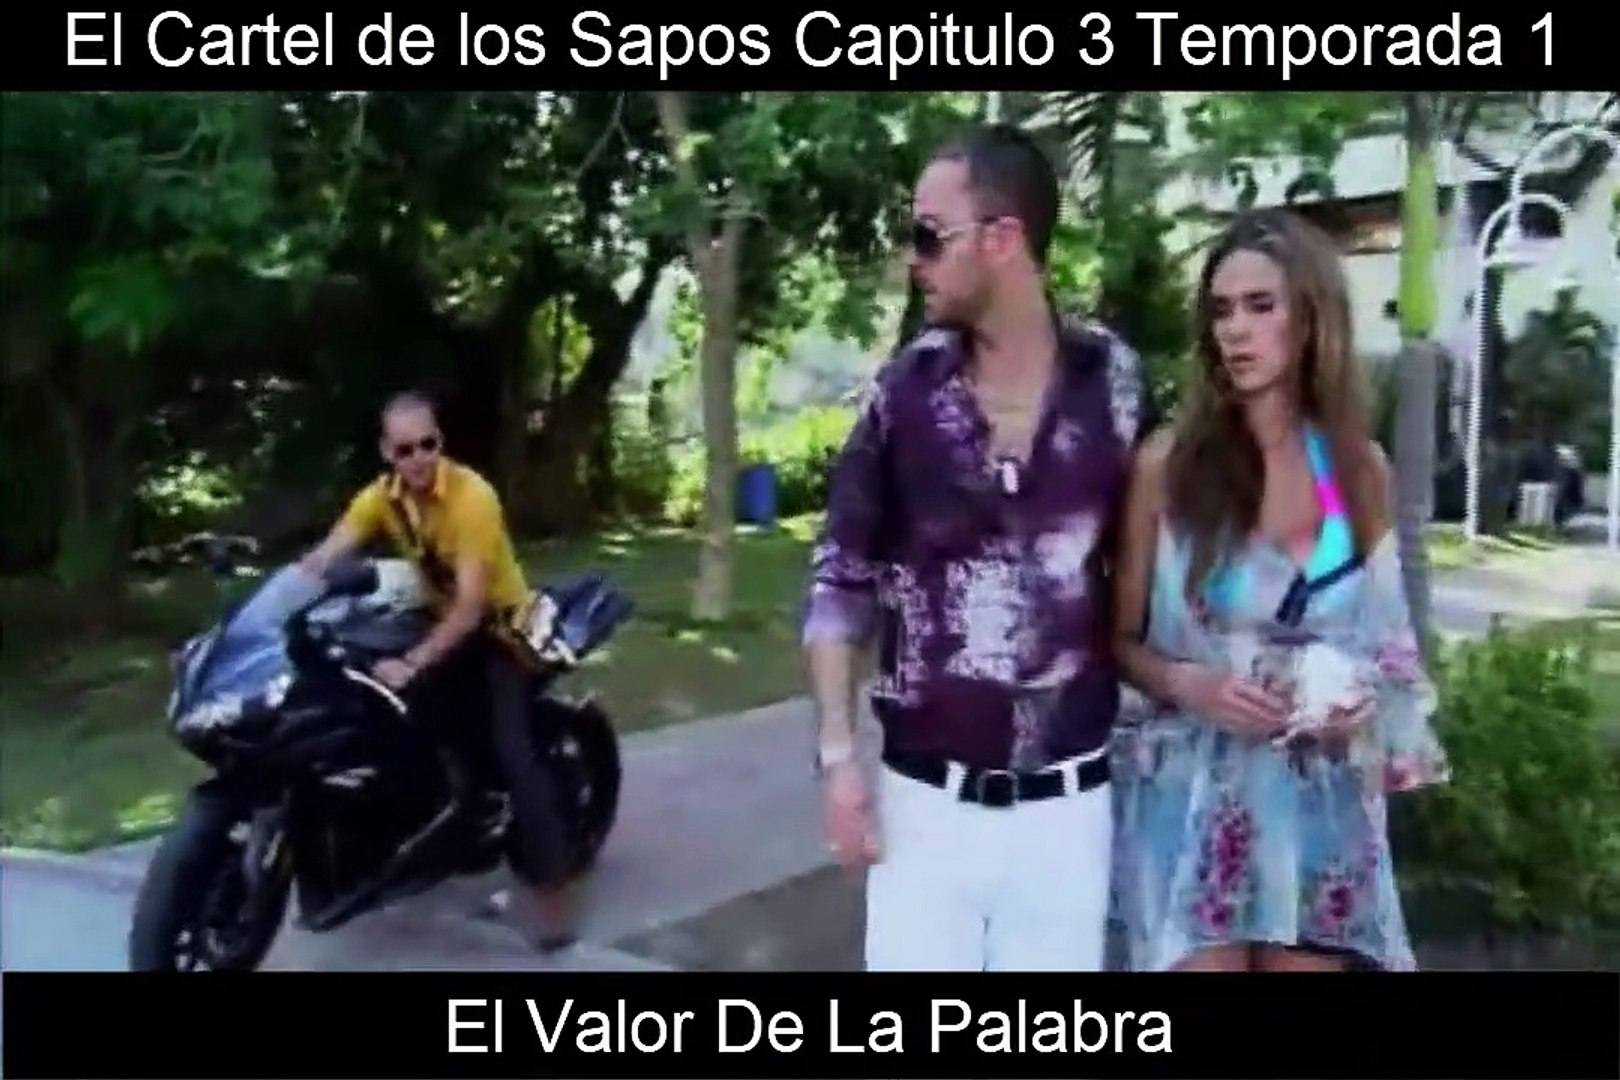 El Cartel De Los Sapos Capitulo 03 Temporada 1 Vídeo Dailymotion